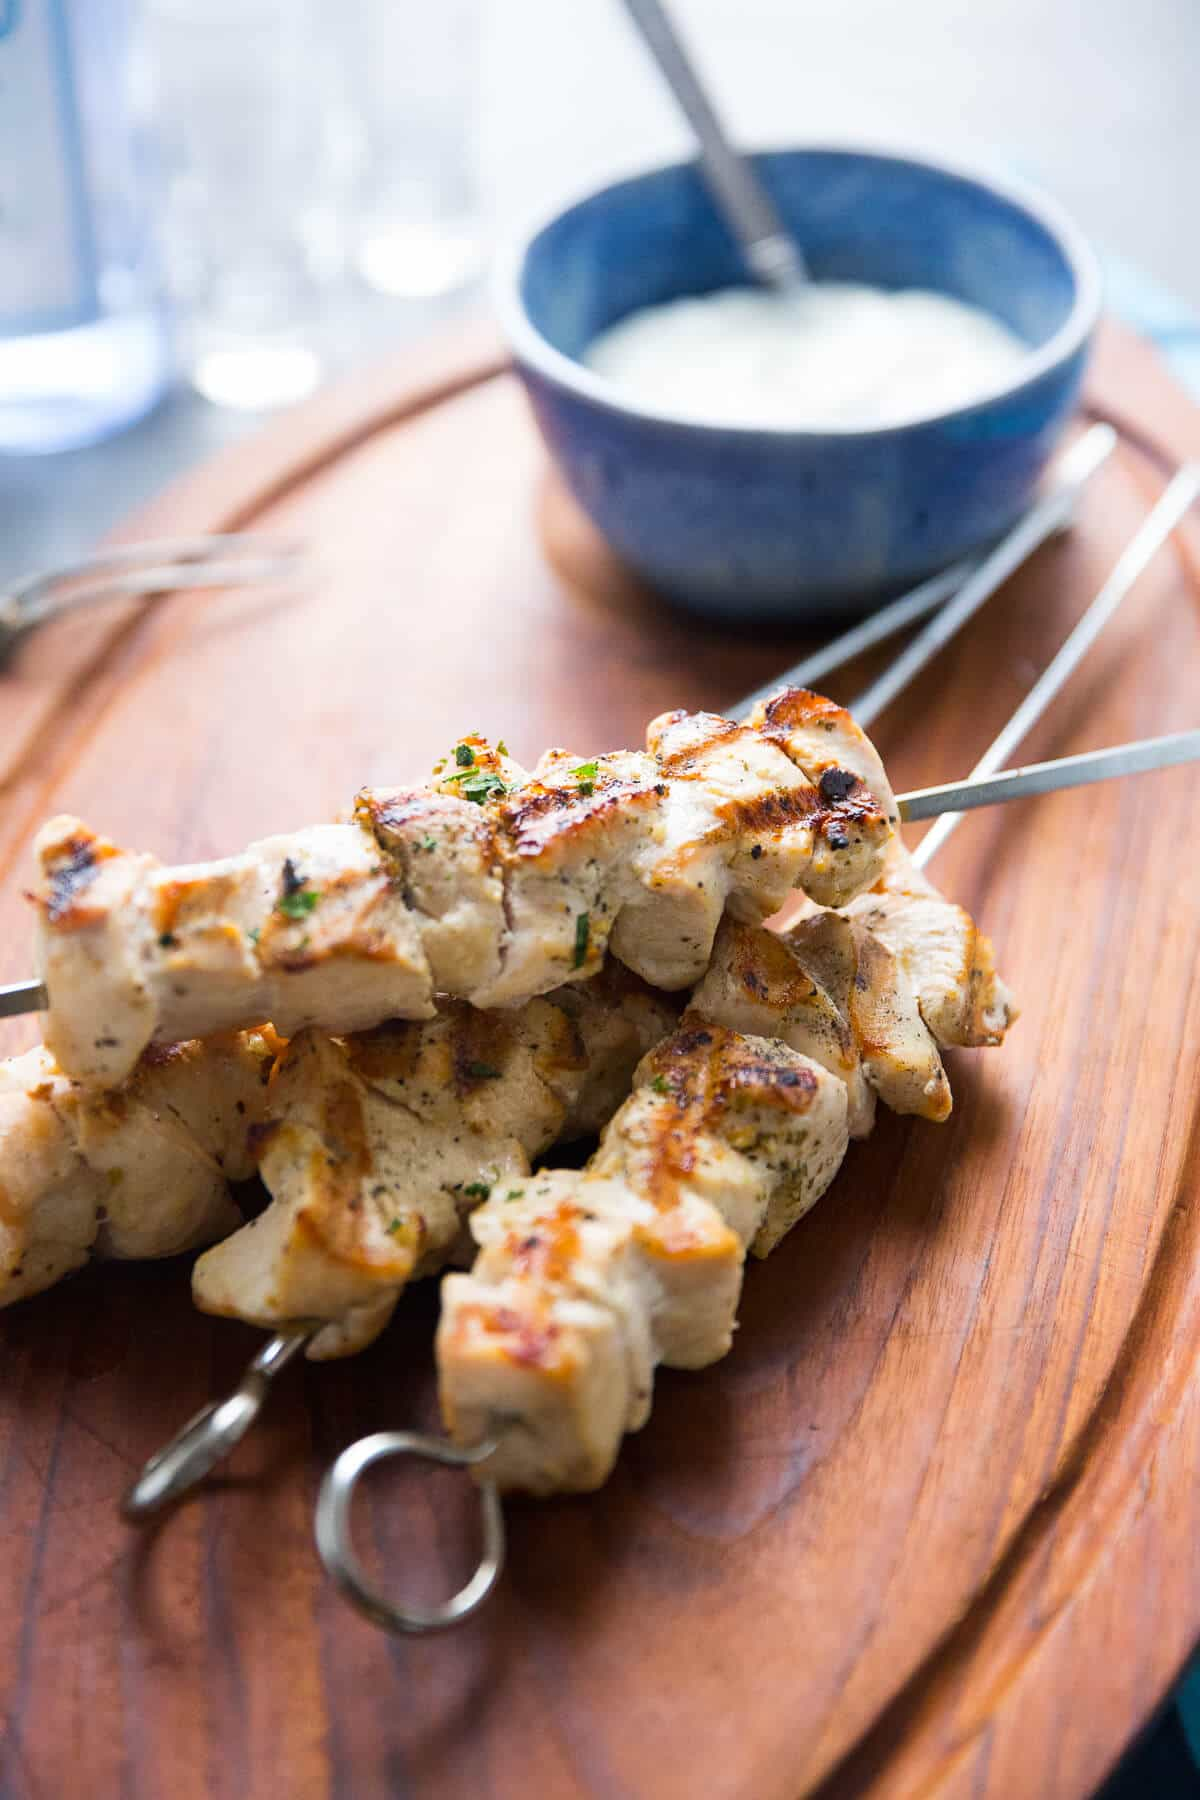 Greek chicken souvlaki on the grill is a great weeknight meal option. The skewers take minutes to grill up!